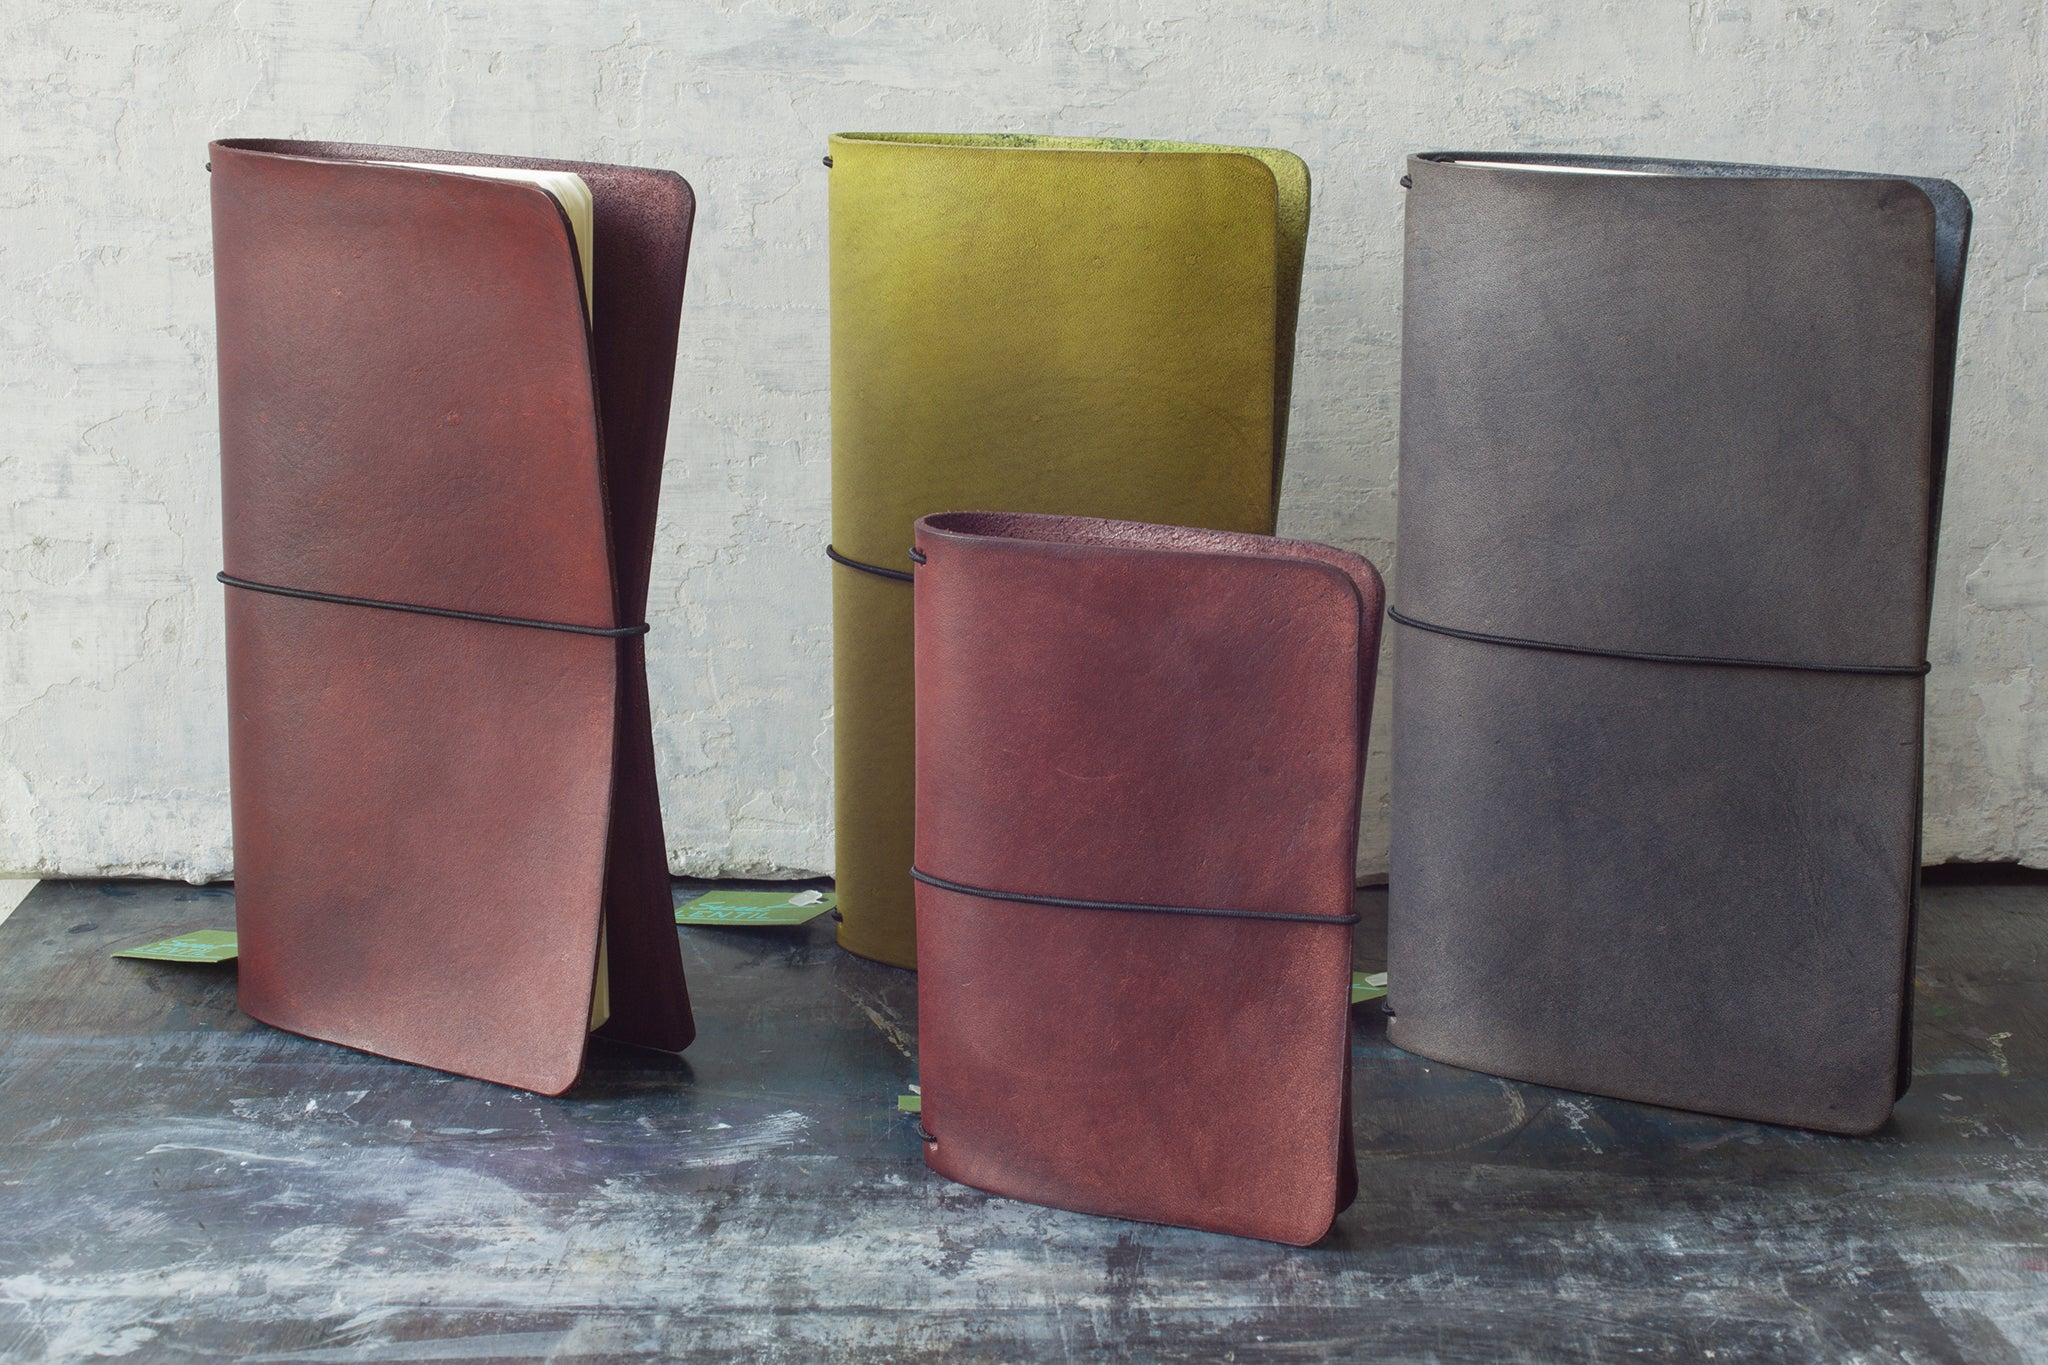 Secret Lentil leather journals